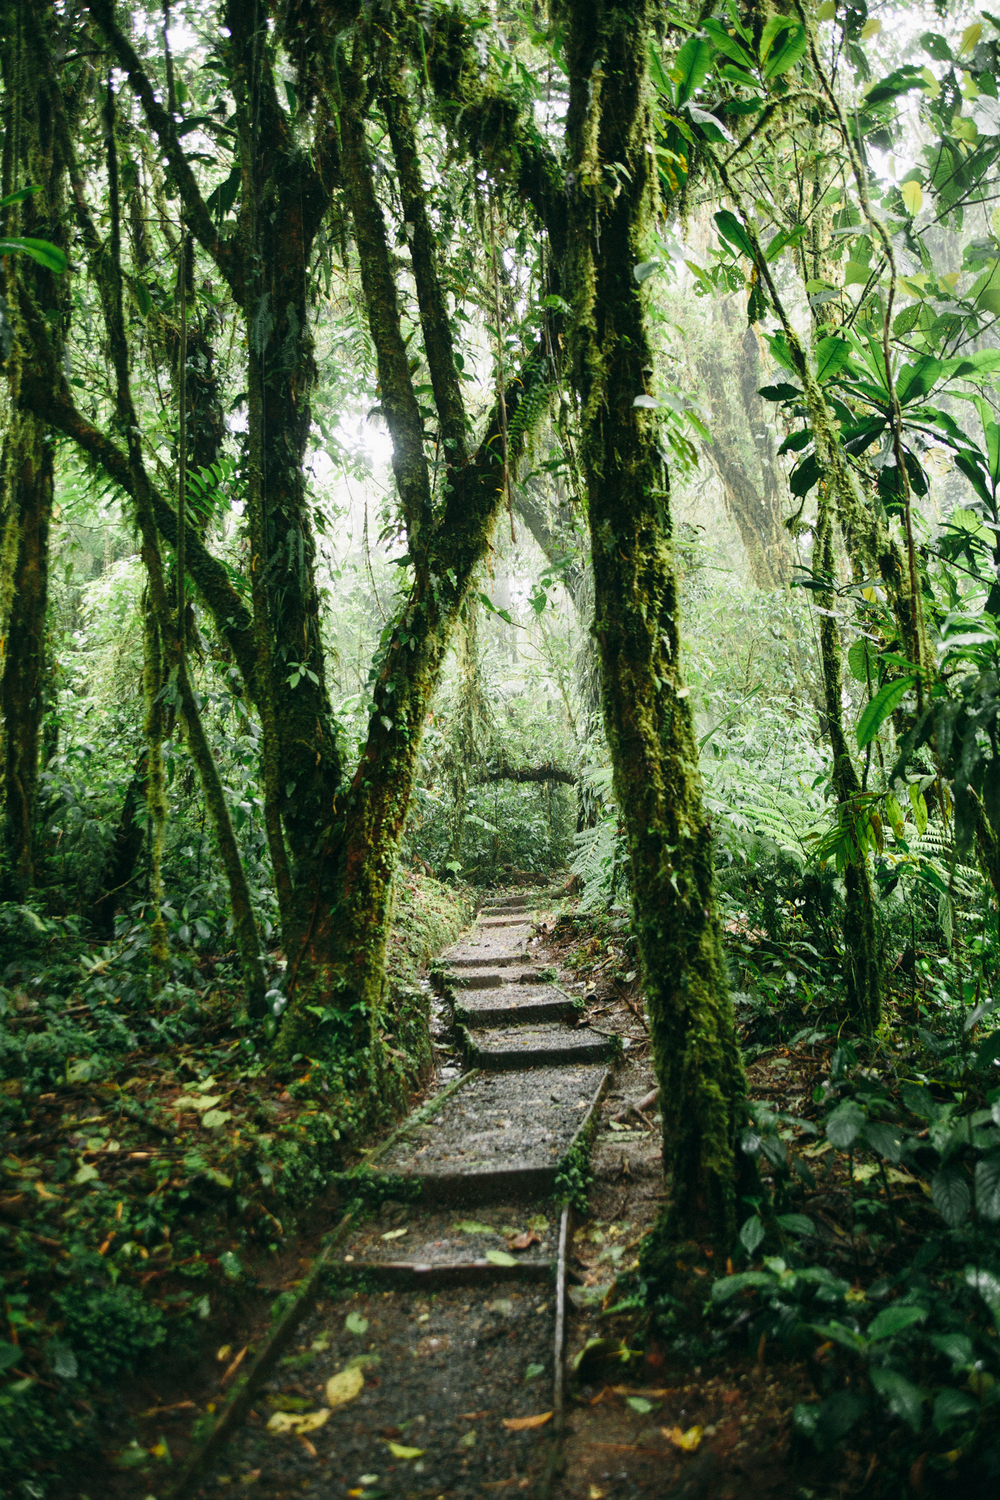 The beginning of the Santa Elena Reserve Caño Negro trail.